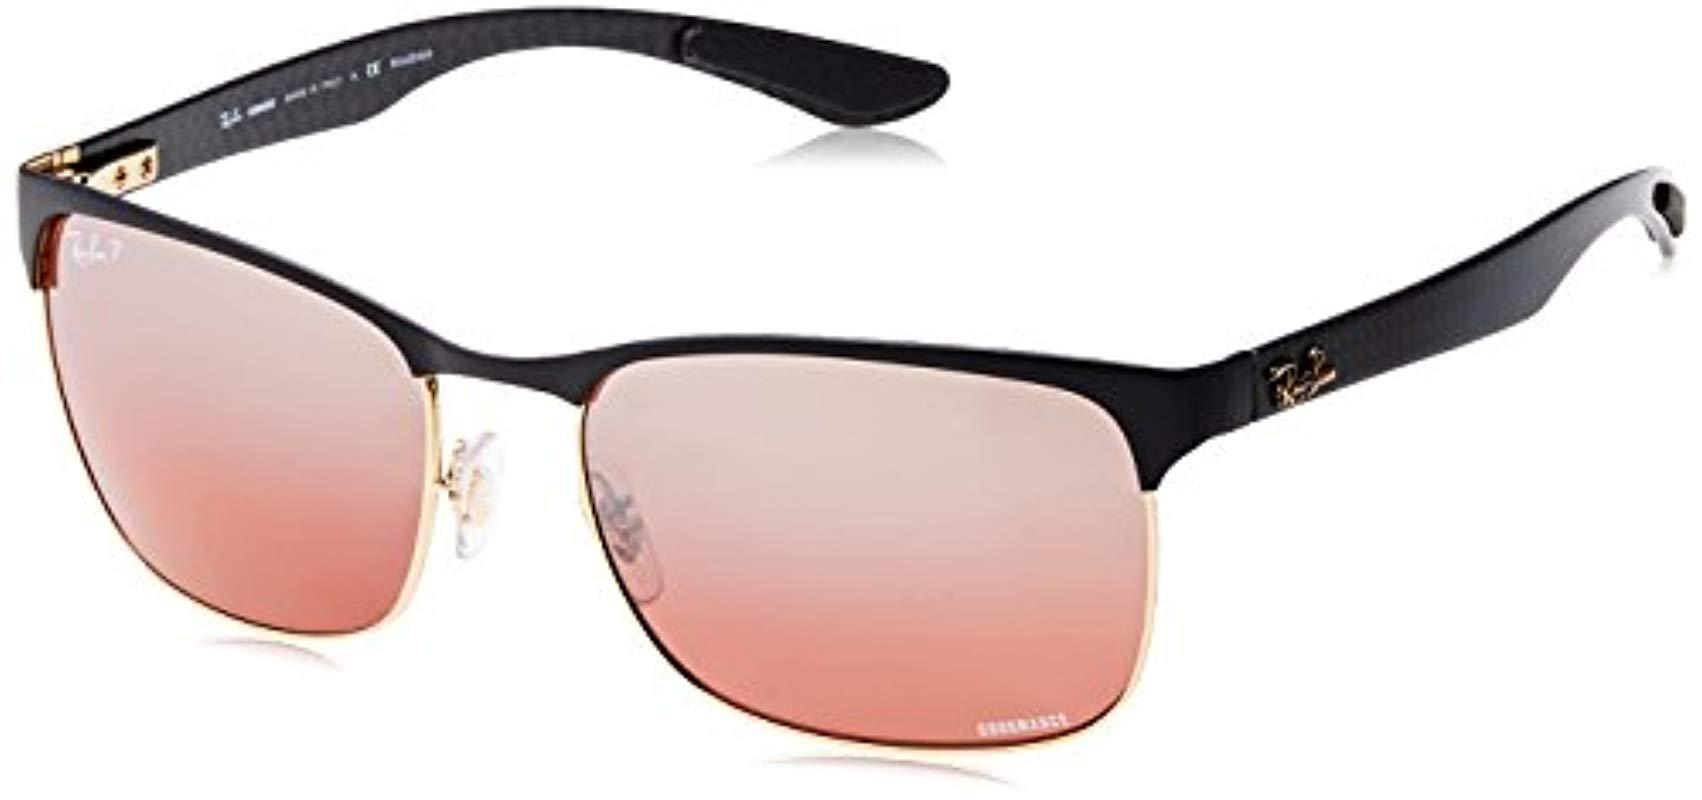 7292c2aeec74b Lyst - Ray-Ban Rb8319ch 60 Sunglasses 60mm for Men - Save 17%